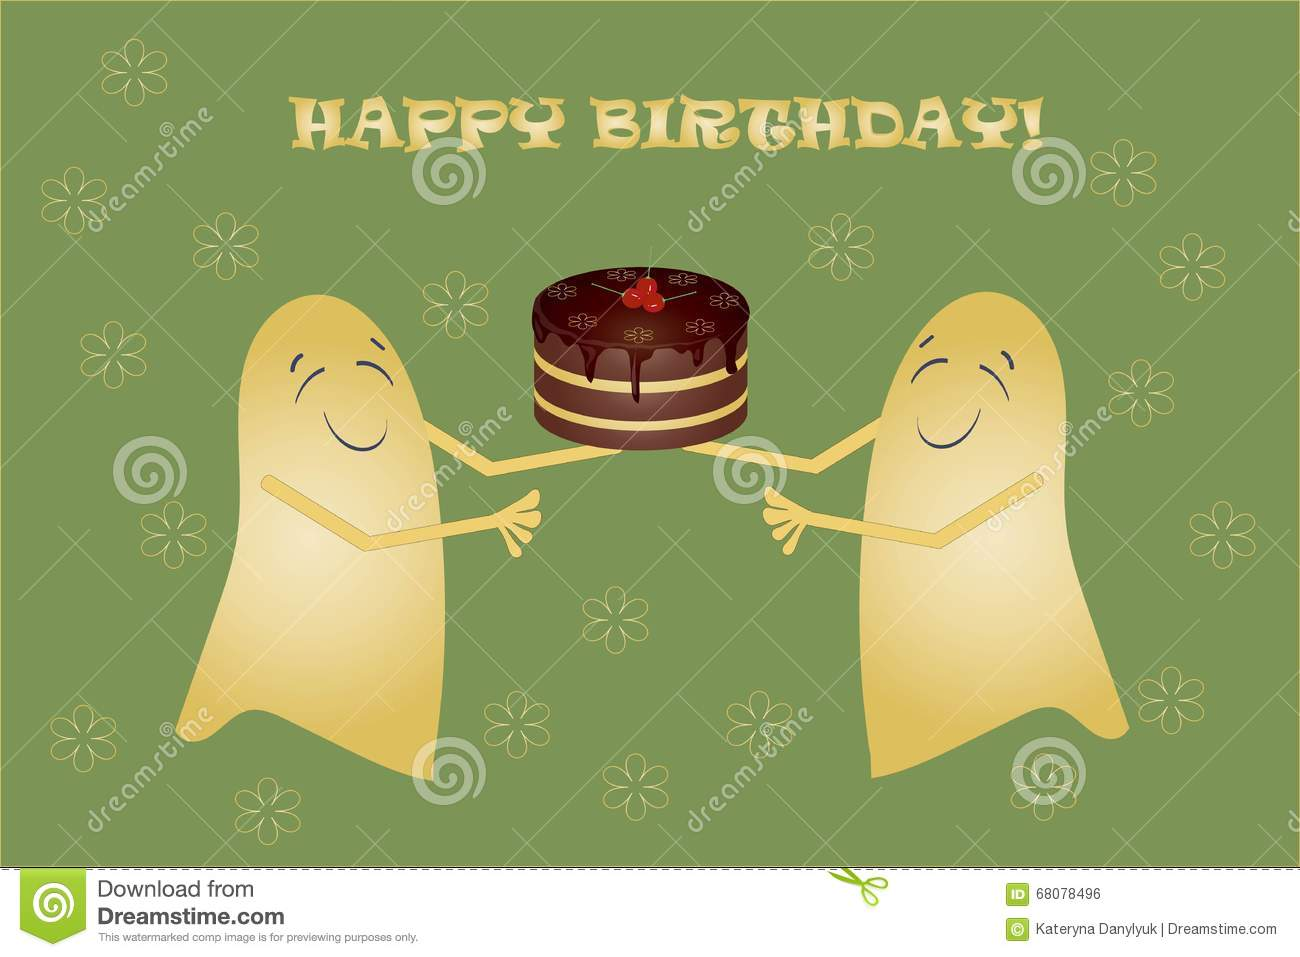 greeting card happy birthday banner two cute yellow smiling ghosts